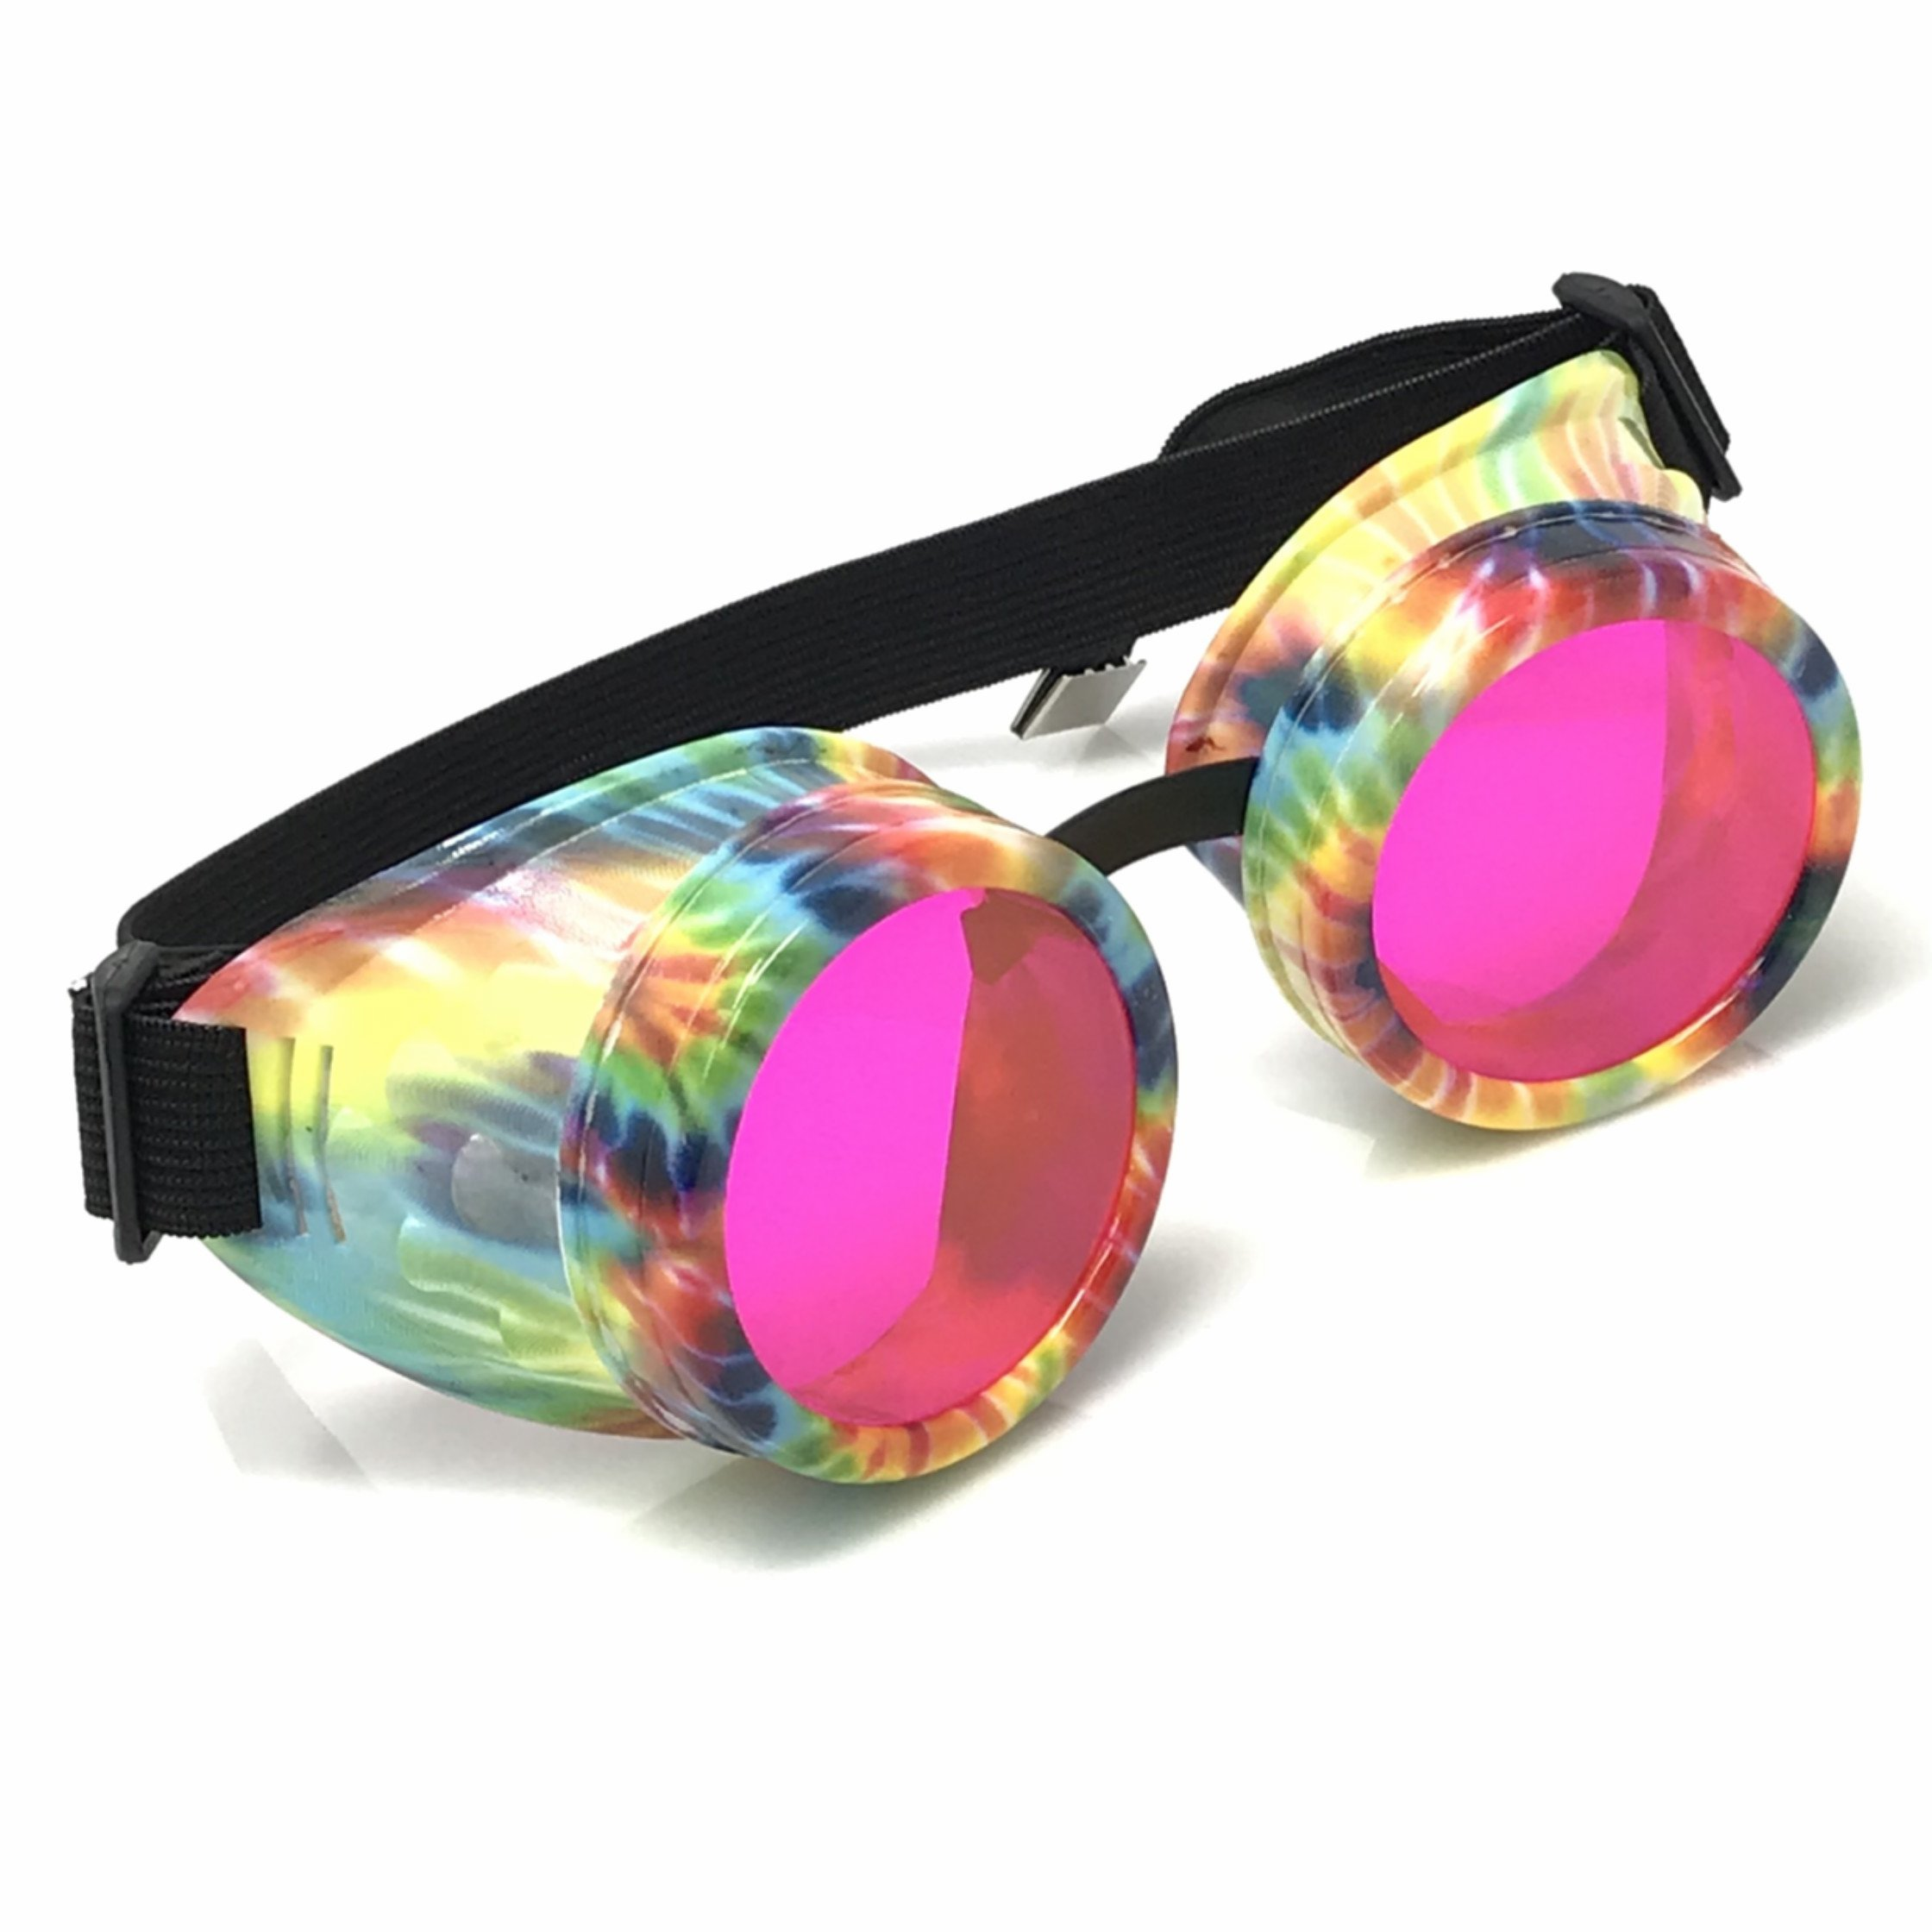 UV Glow in The Dark Steampunk Rave Goggles Retro Round Glasses, Tie Dye Pattern Neon Pastel Color Lenses by UMBRELLALABORATORY